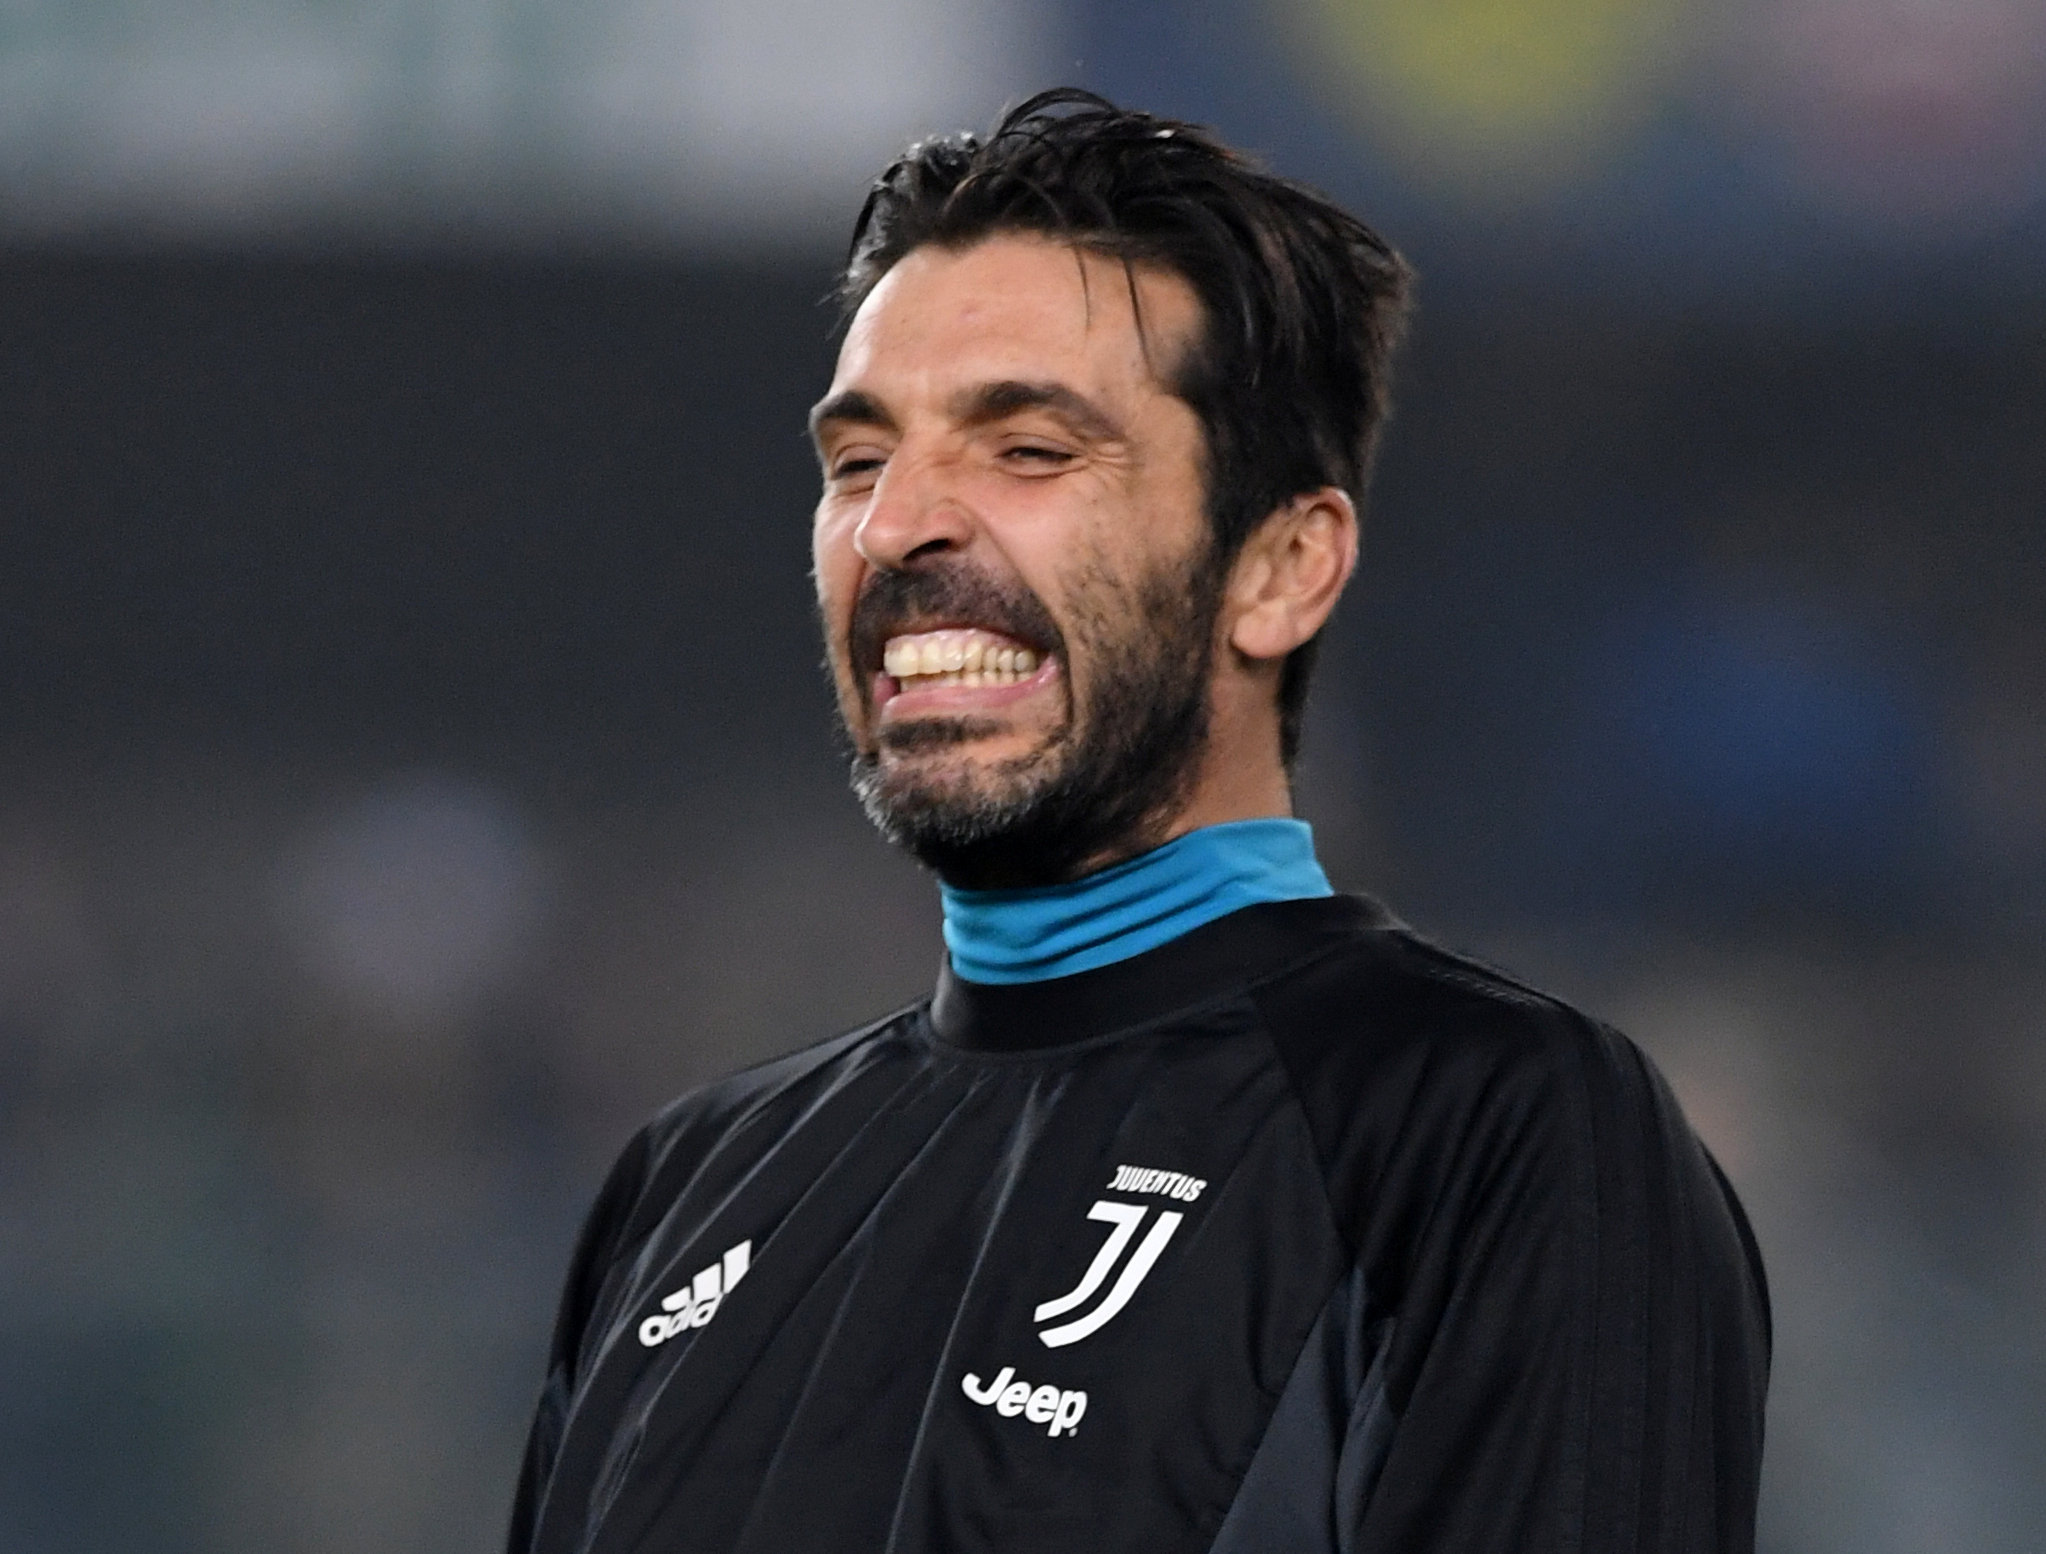 Juventus keeper Buffon undecided over his future